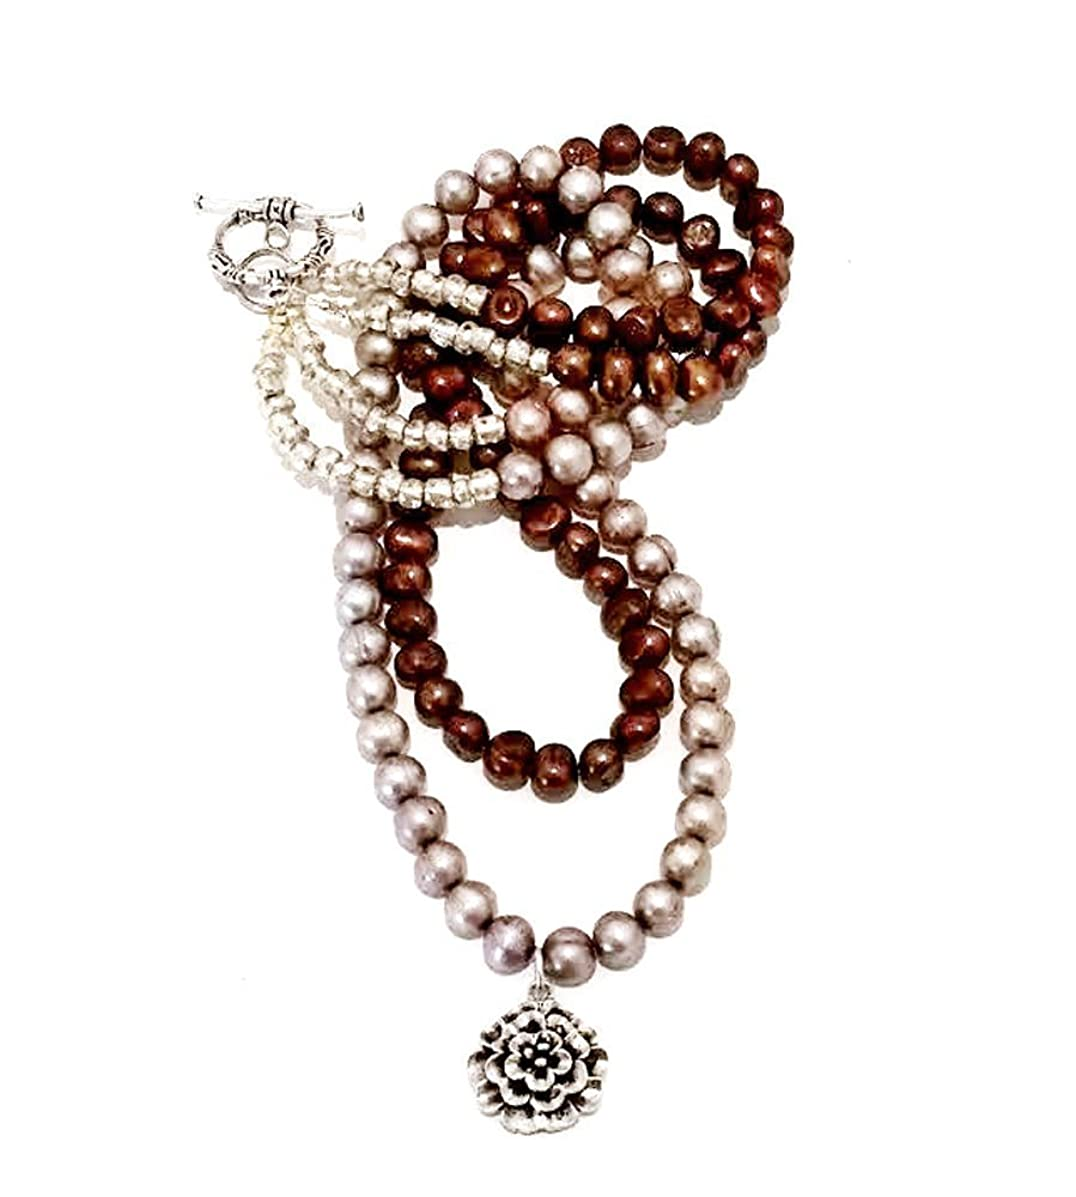 Freshwater Cultured Pearl Beads Double Strand Layer Necklace with 925 Sterling Silver Flower Pendant